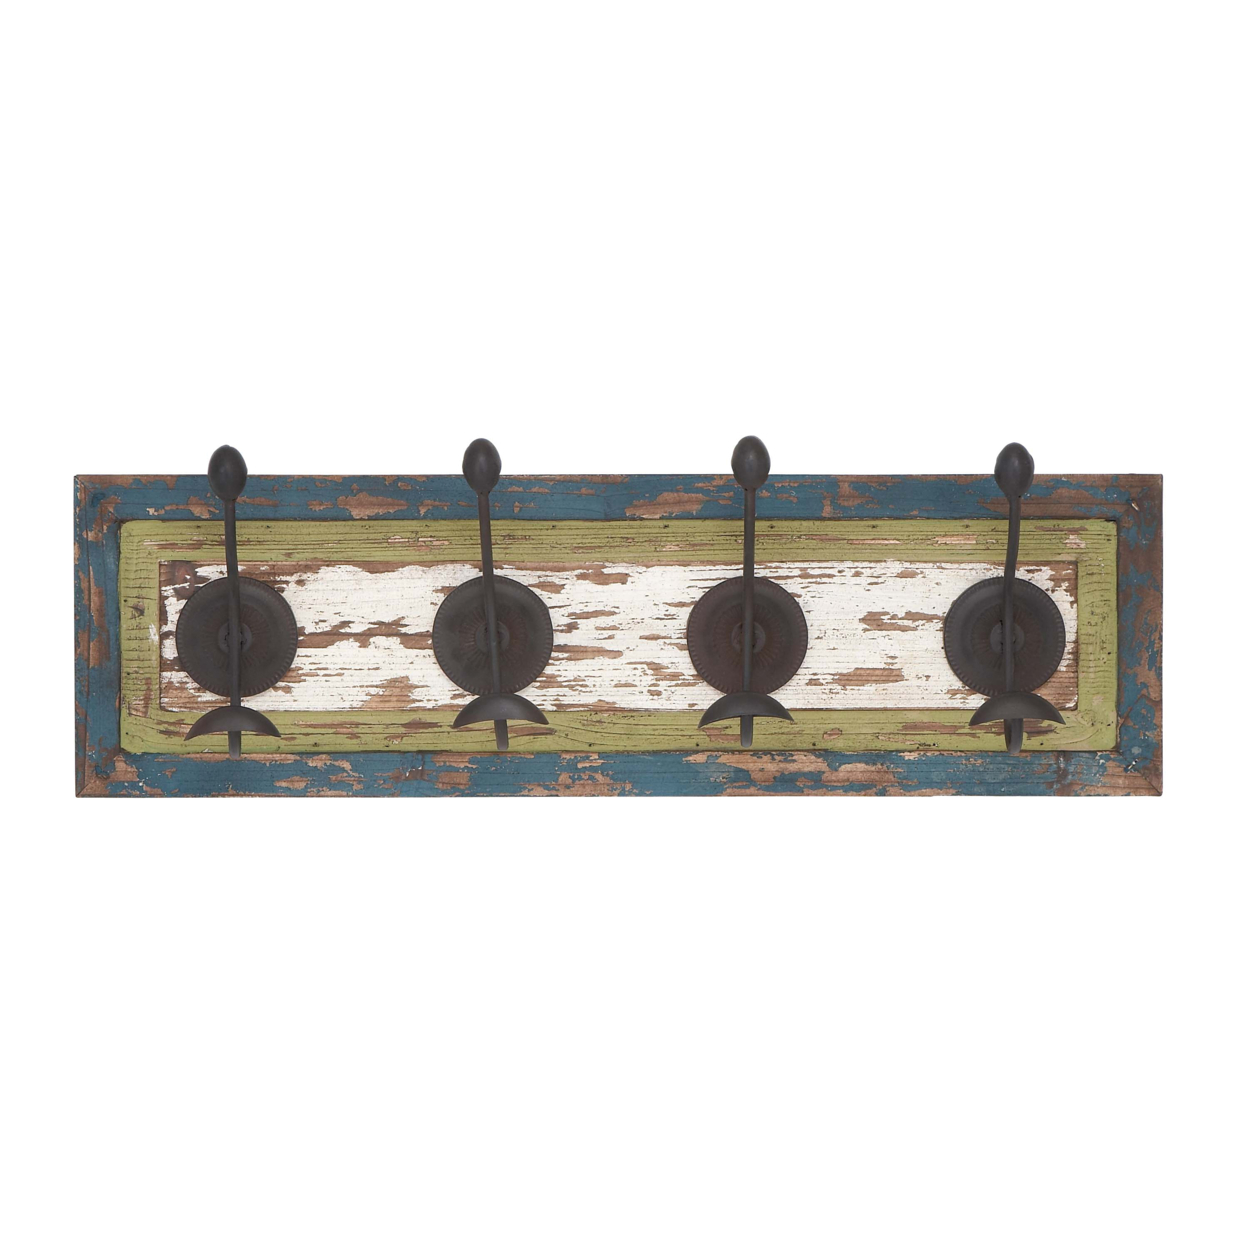 Wall Hook In Rectangular Shaped & White Wooden Board